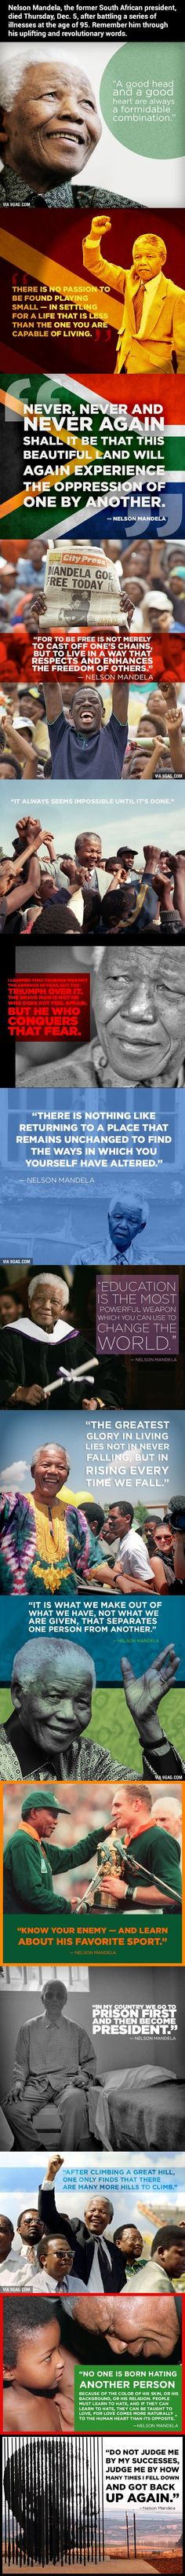 15 Most Inspiring Quotes By Nelson Mandela